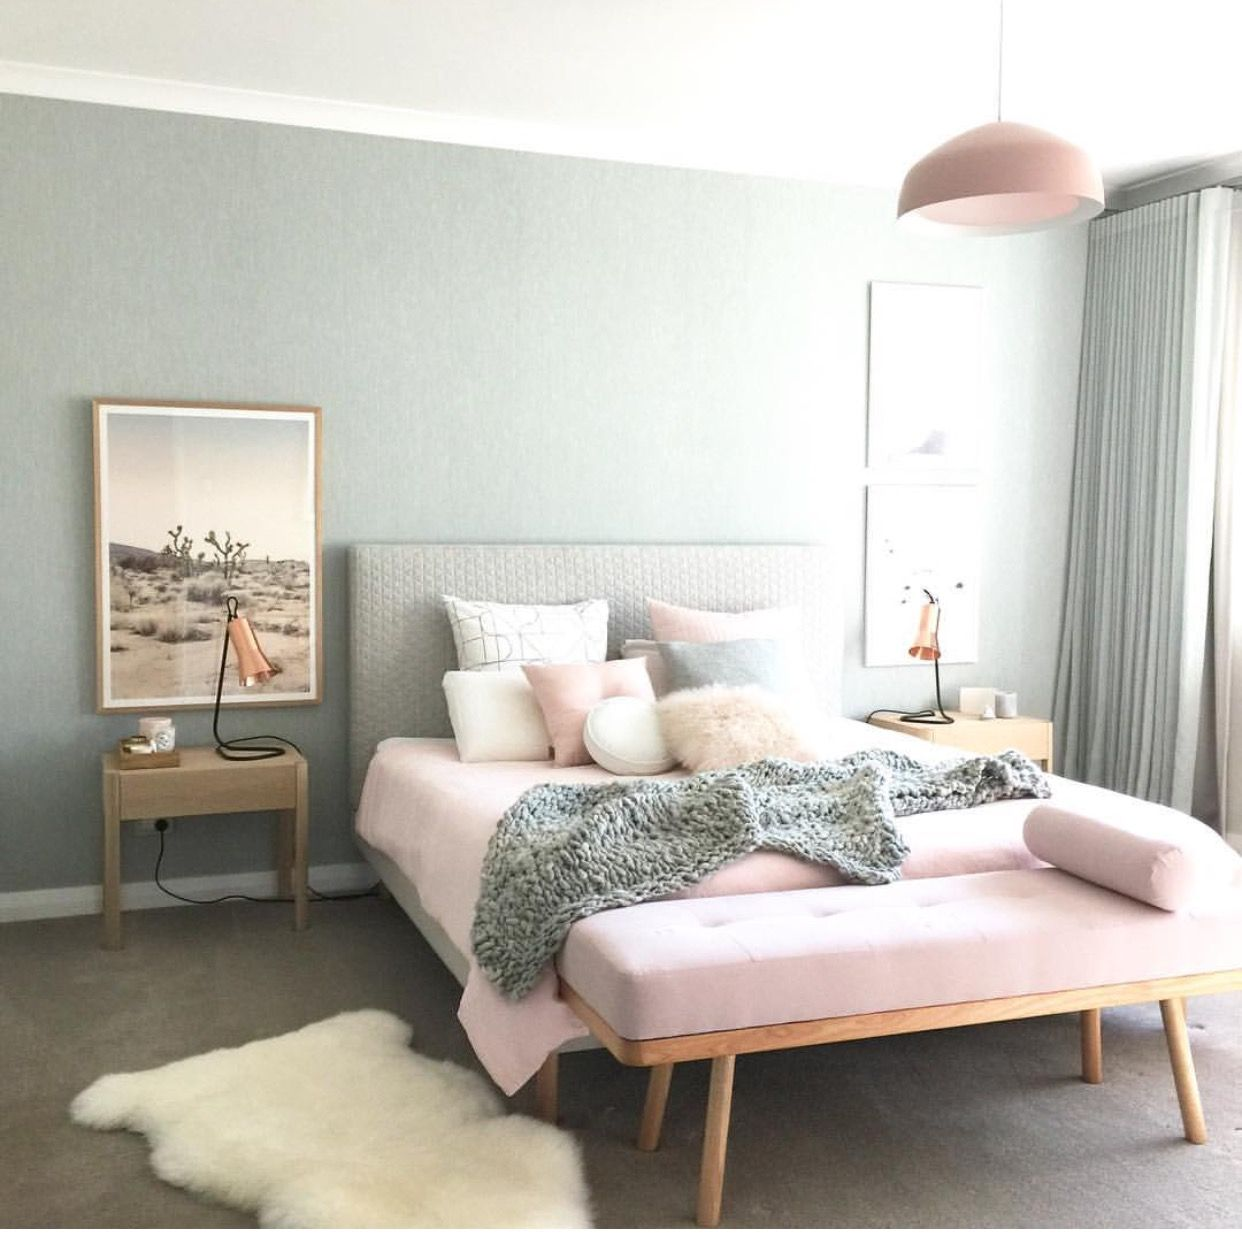 Du blush dans la chambre pinterest pastel bedroom for Pastel diy room decor